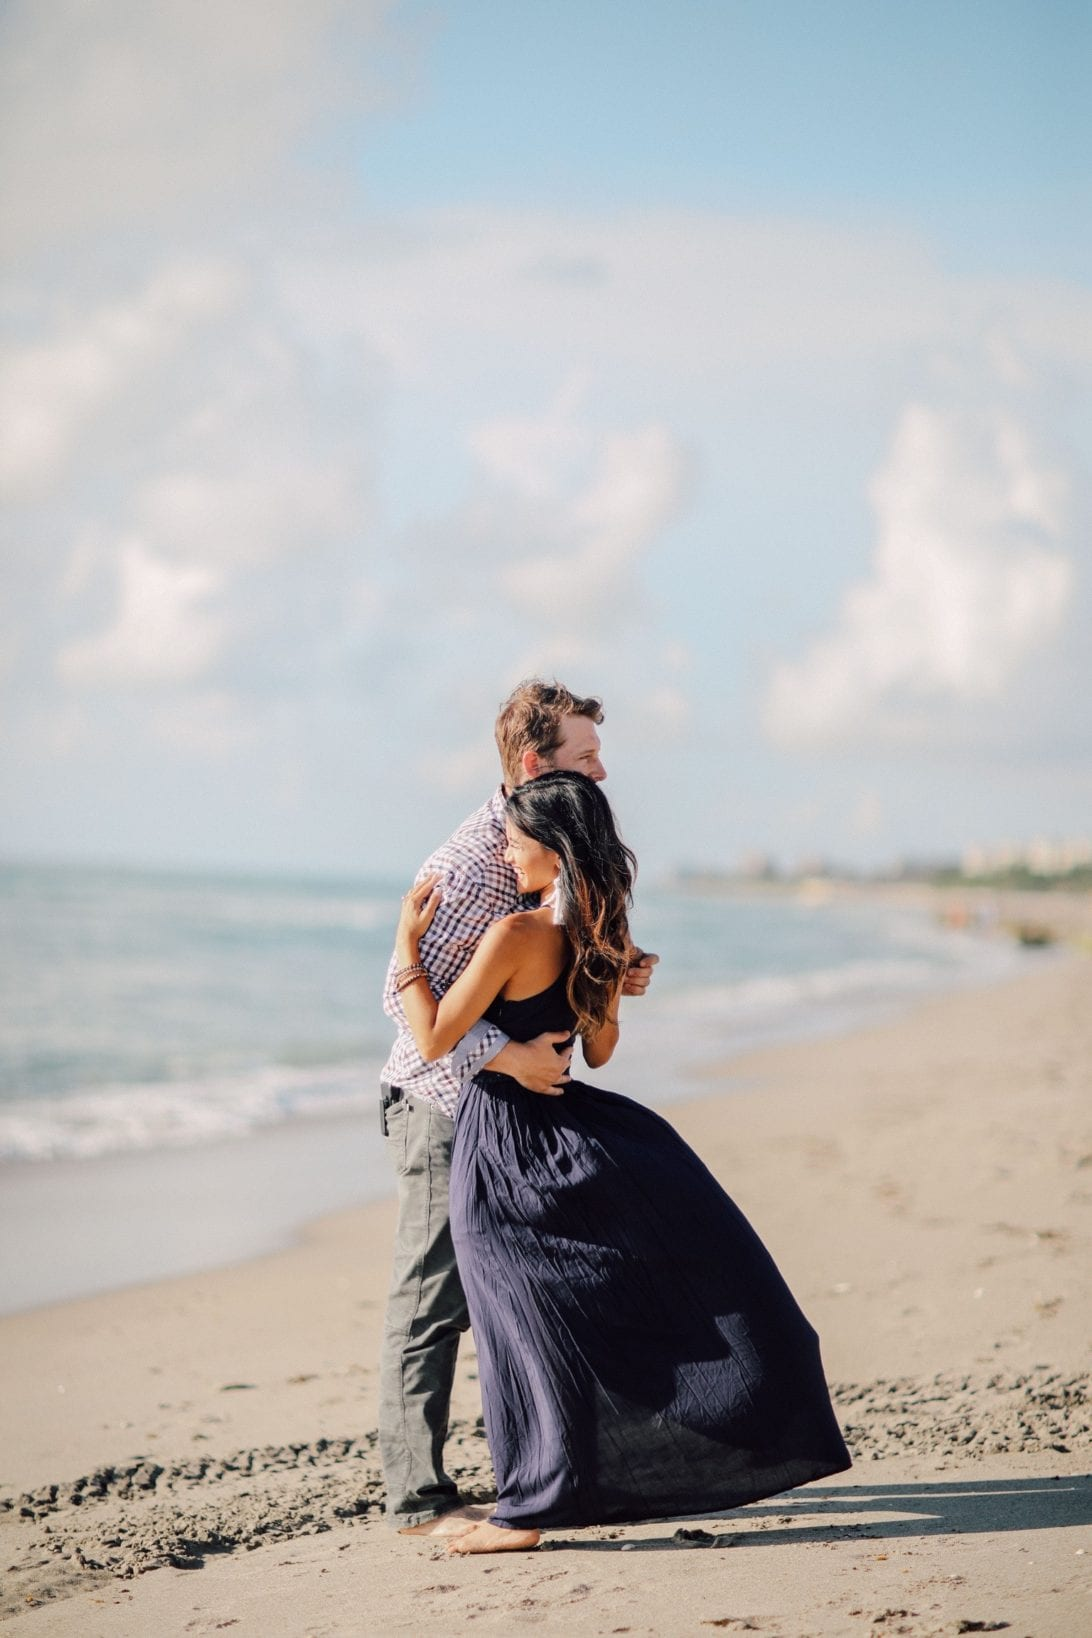 ENGAGEMENT PHOTOS, COUPLE PHOTOS. BEACH PHOTOSHOOT, BEACH ENGAGEMENT, BEACH ANNIVERSARY SHOOT, WHAT TO WEAR AT A PHOTO SHOOT, NAVY MAXI